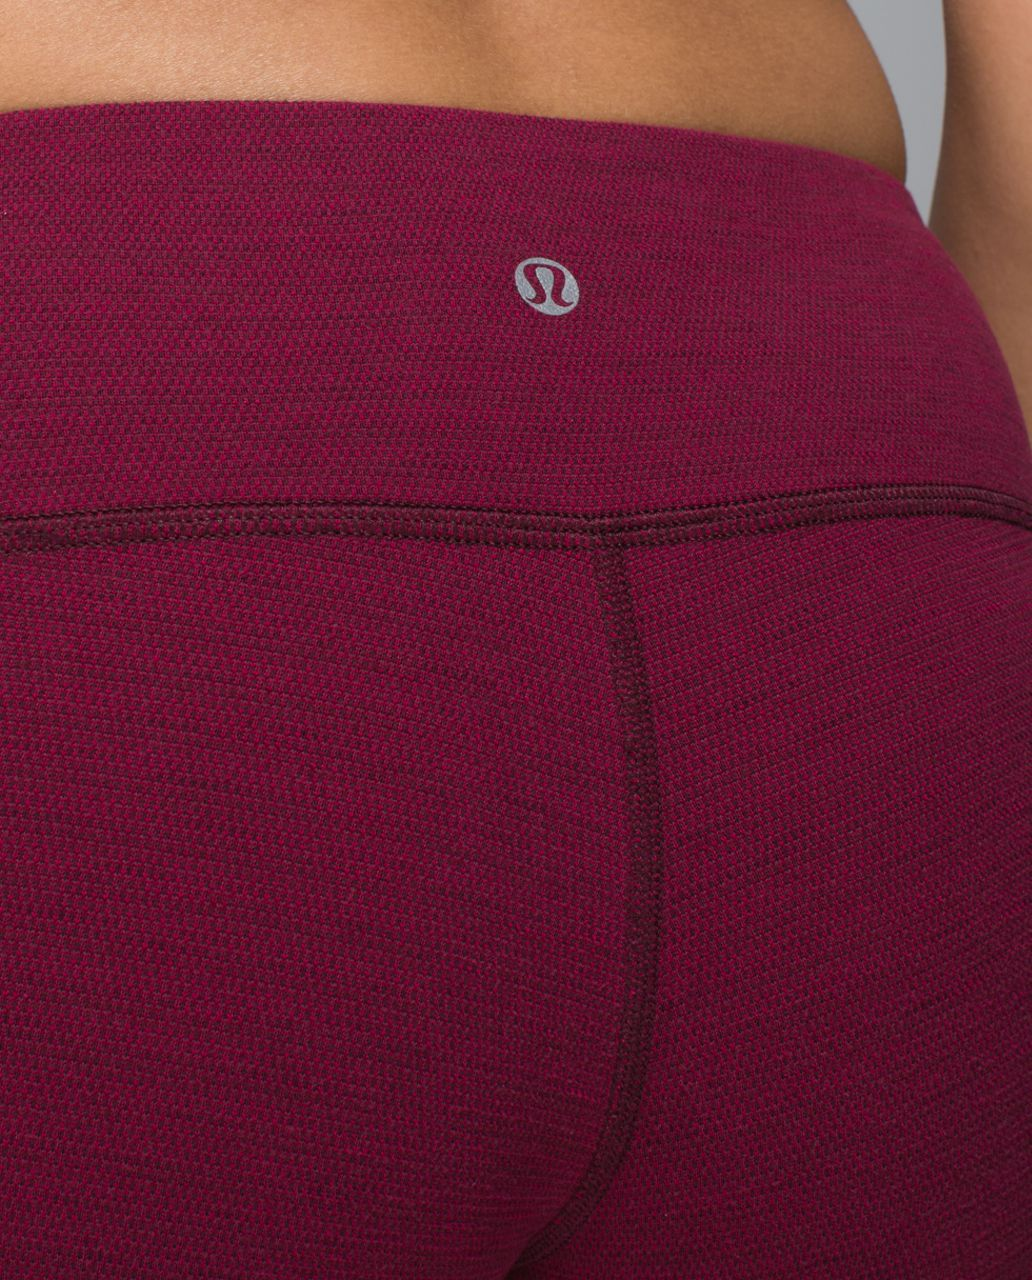 Lululemon Wunder Under Pant - Luon Pique Rust Berry Bumble Berry